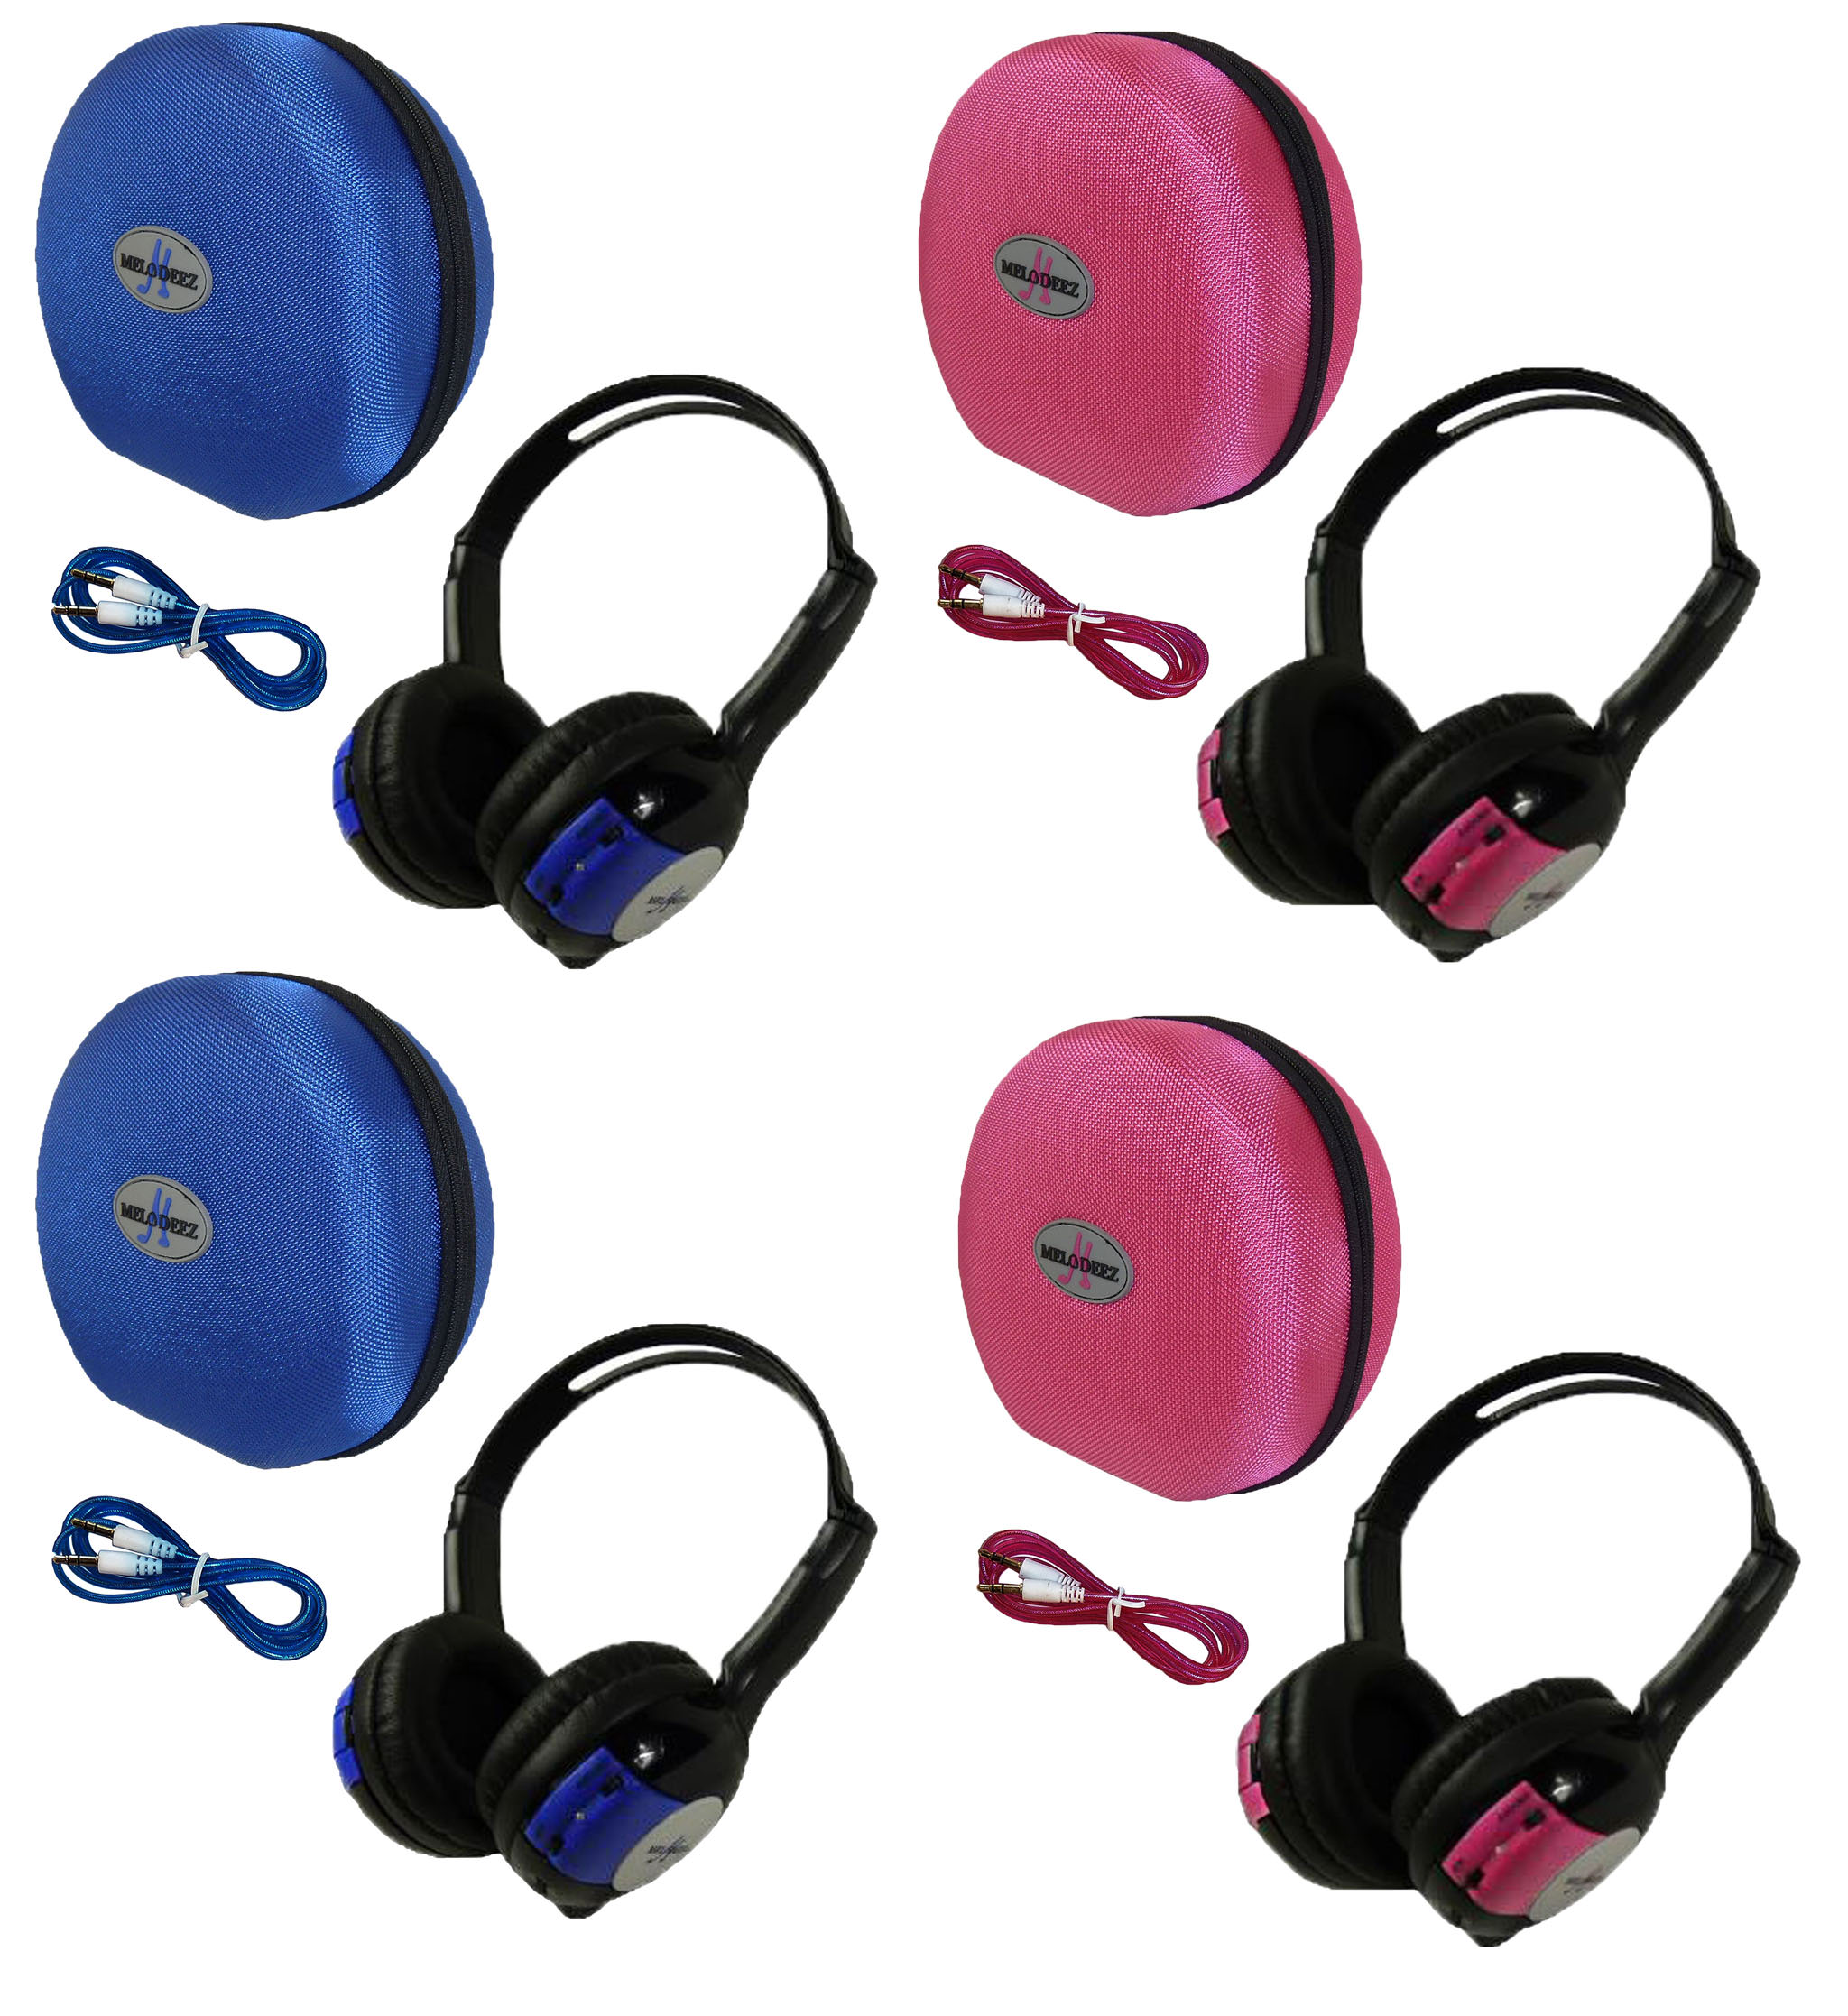 4 Pack Kid Sized Wireless Infrared Universal Car DVD IR Automotive Colored Adjustable 2 Channel Headphones With Case and 3.5mm Auxiliary Cord